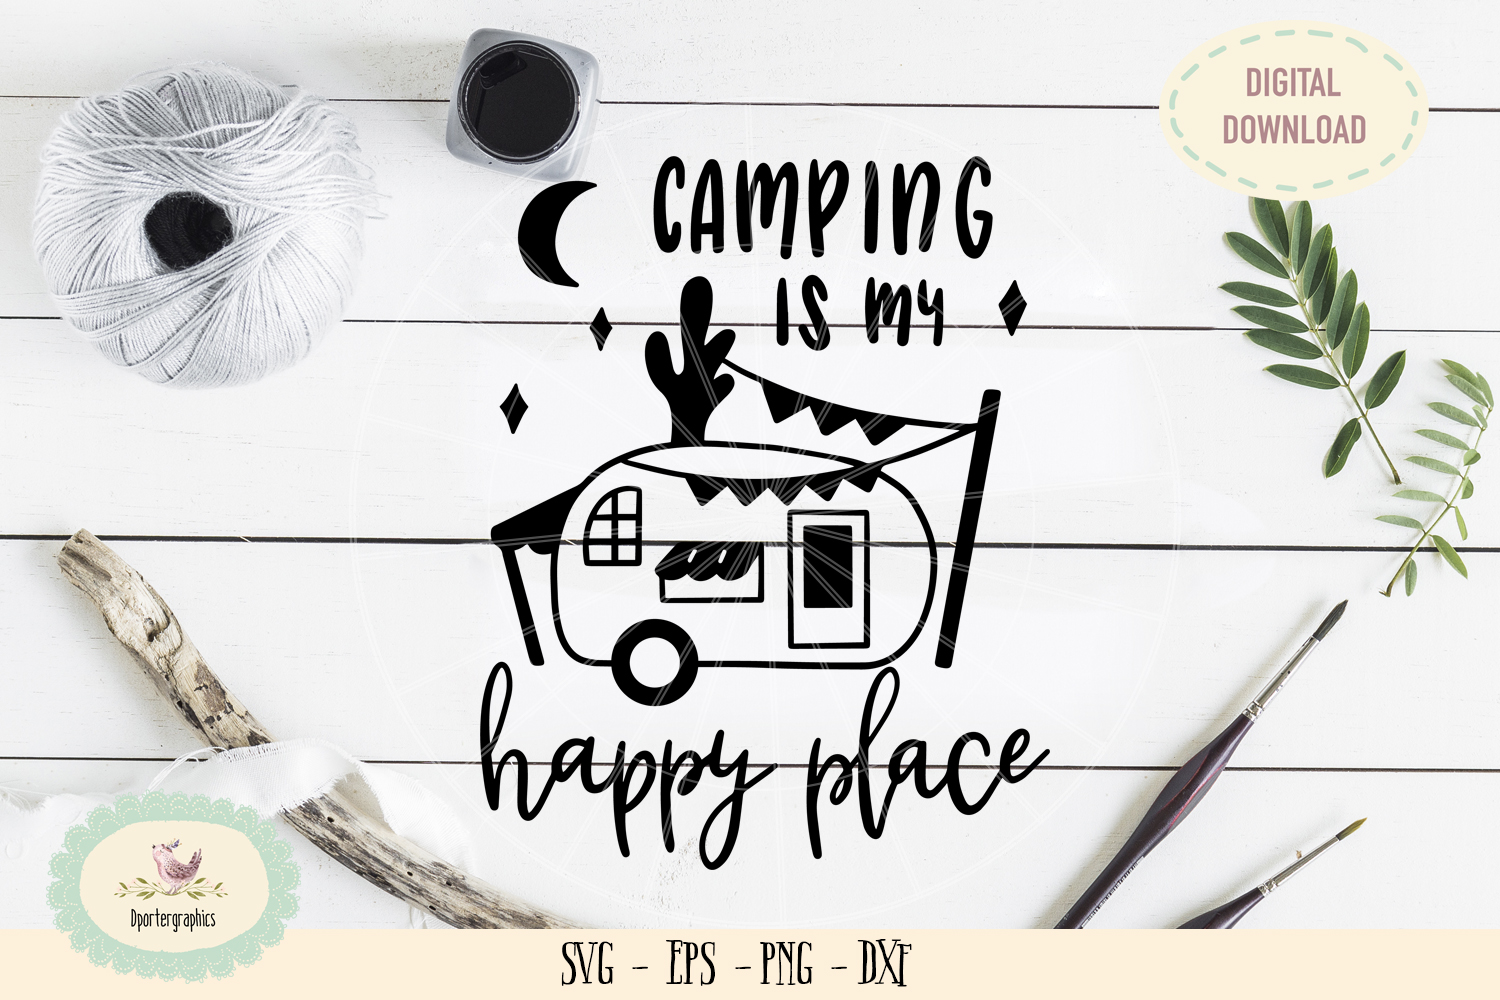 chastity a car diagram camping is my happy place svg png  233245  svgs design bundles  camping is my happy place svg png